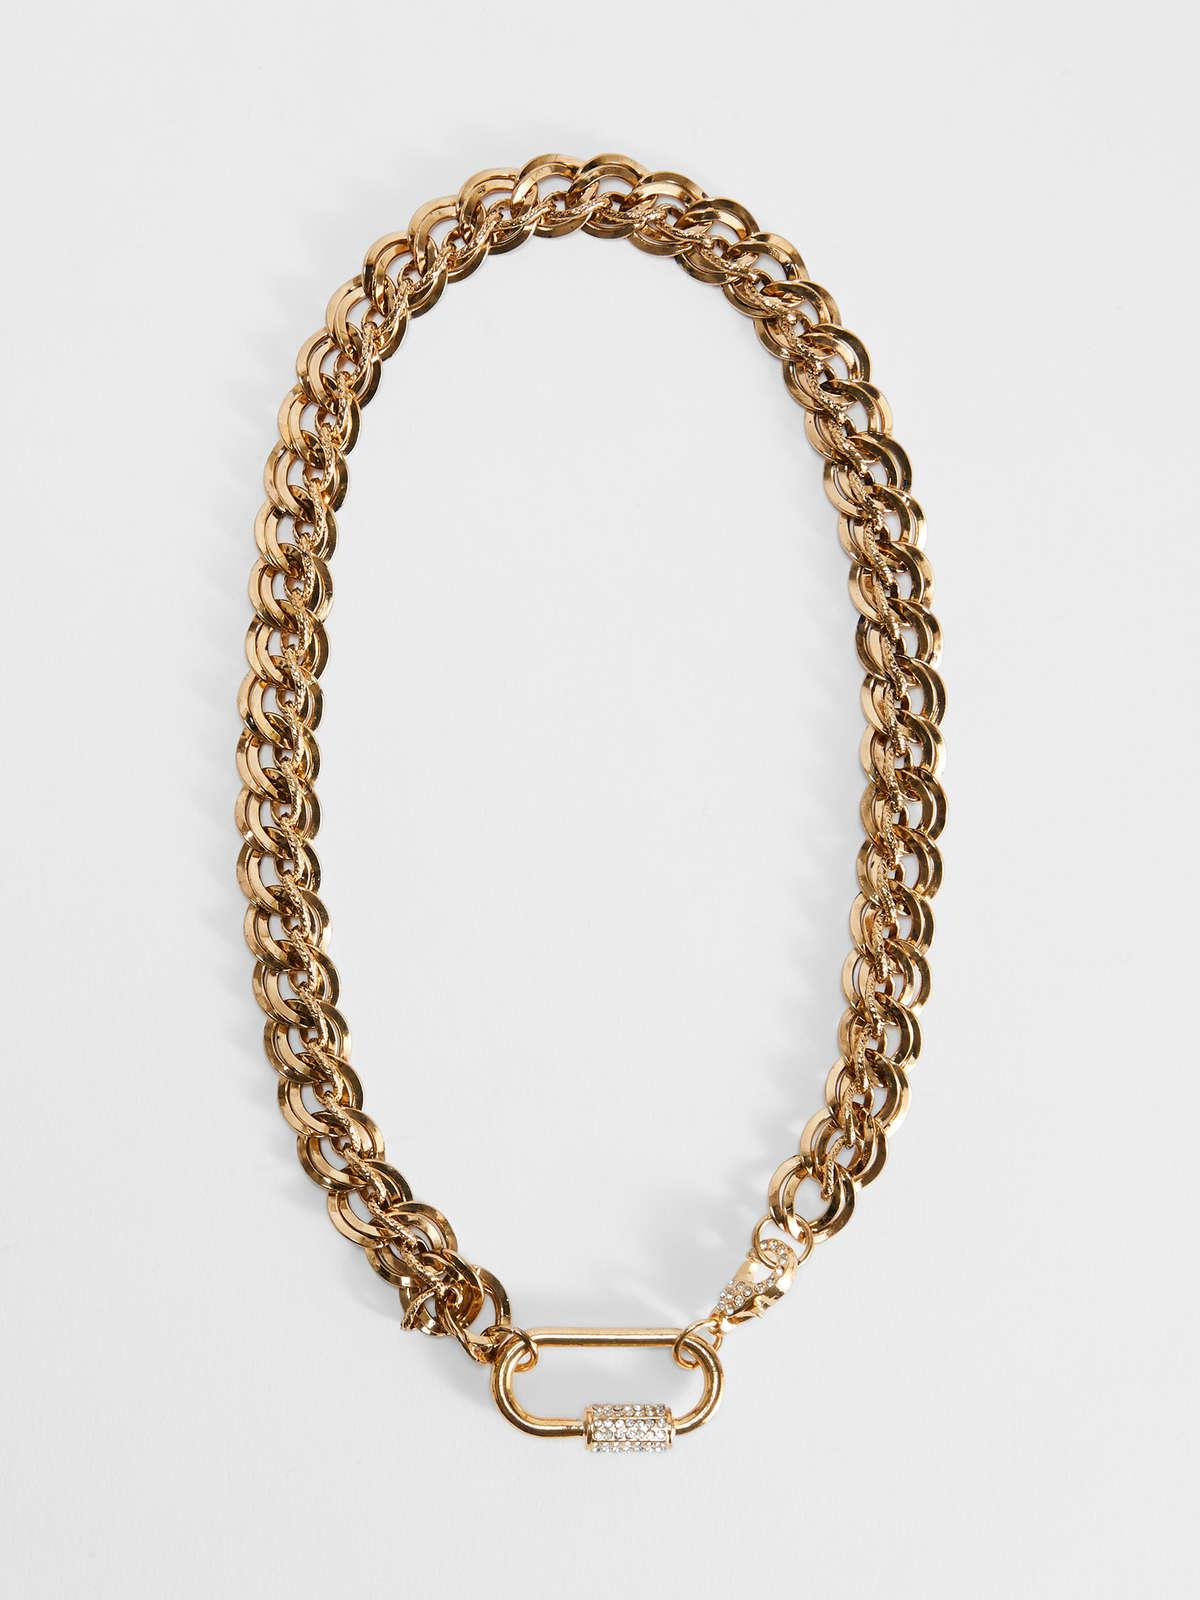 Womens Max Mara Jewelry   Chain Necklace With Snap-Hook Clasp Gold